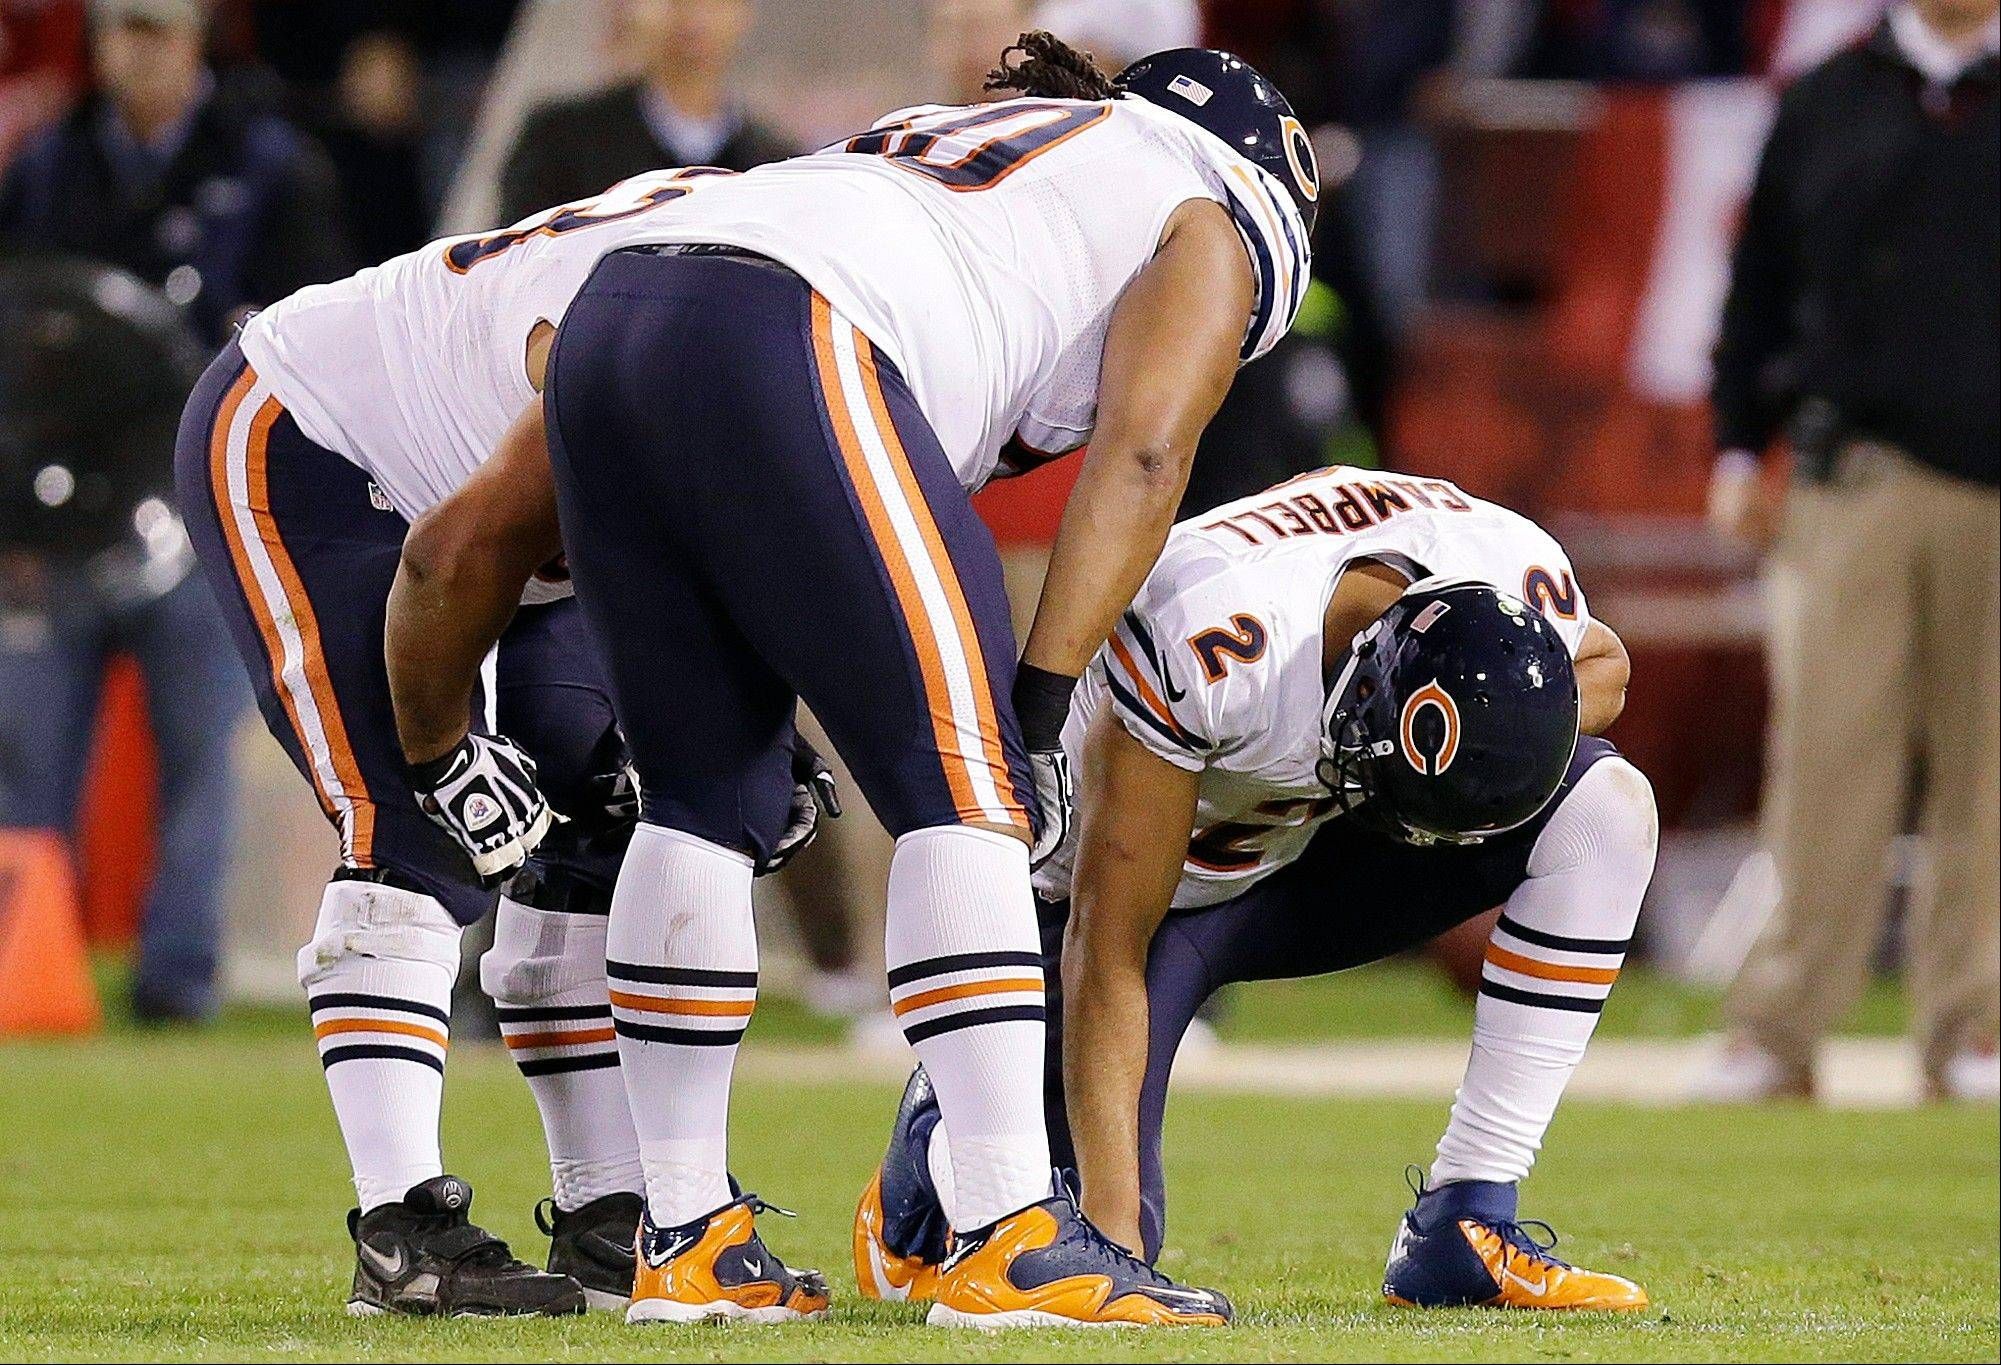 Bears quarterback Jason Campbell is looked over by teammates after being tackled during Monday's second half in San Francisco.